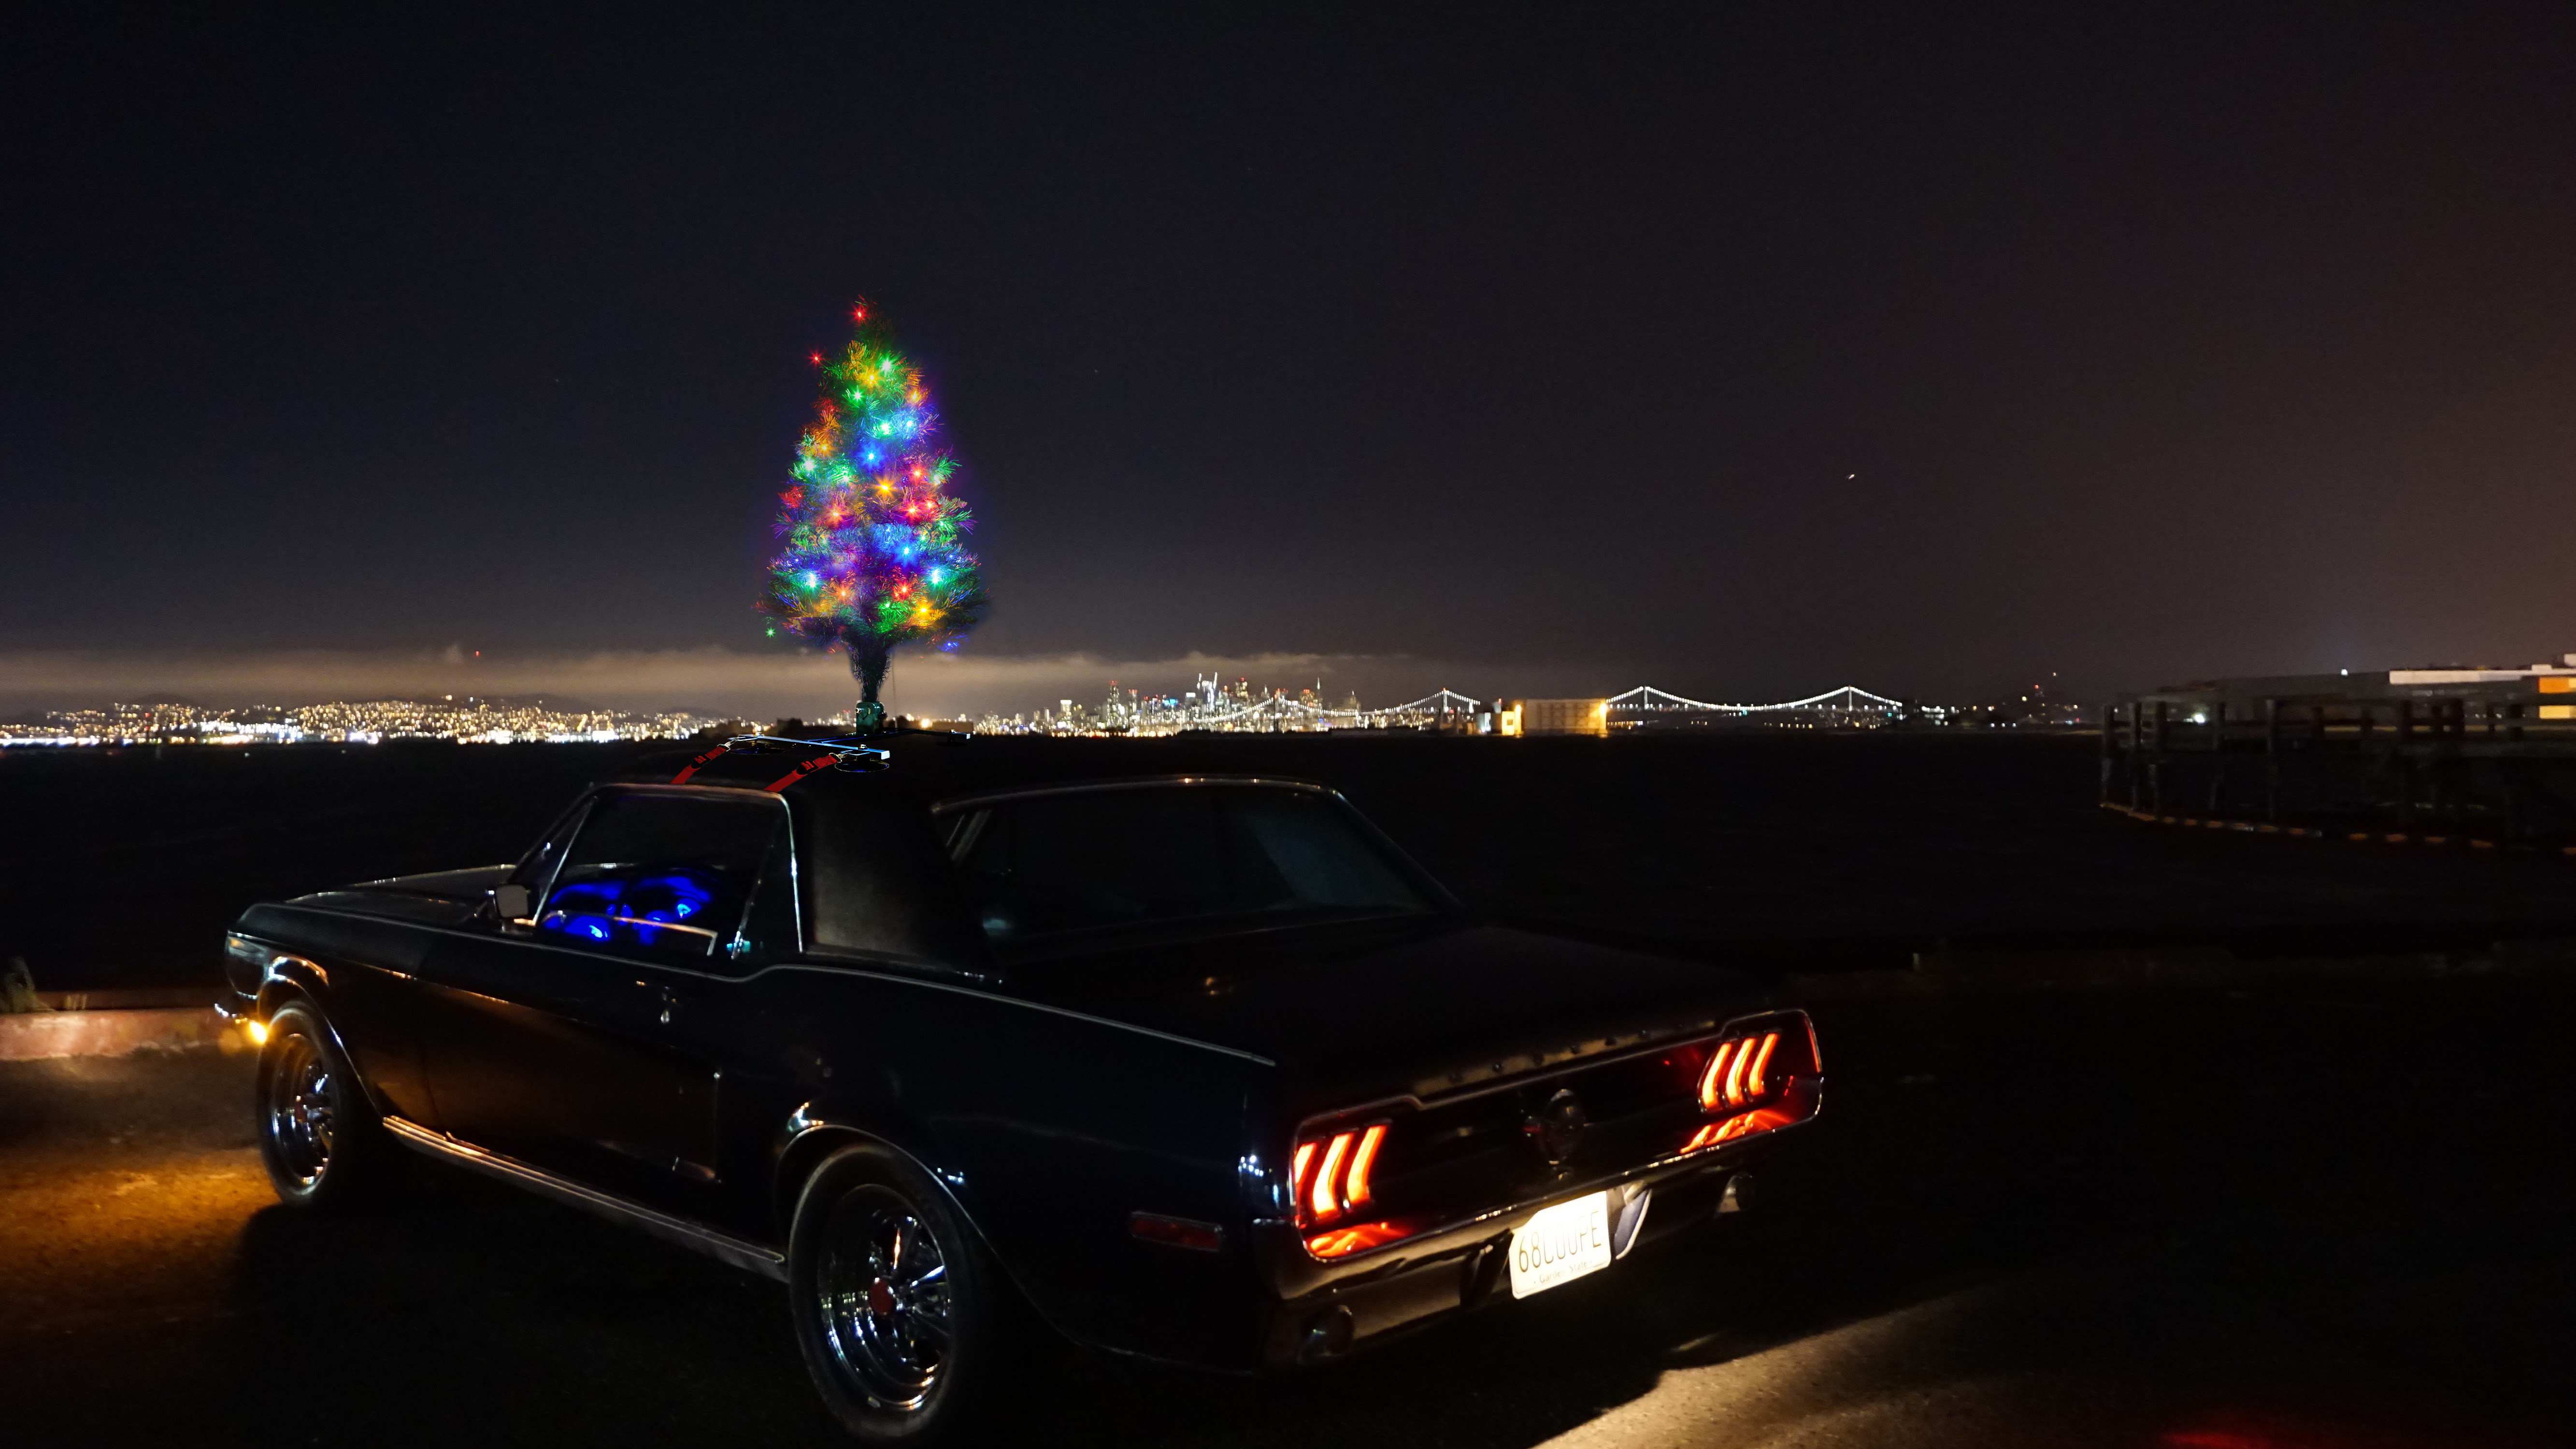 Car Christmas Tree.The Christmas Car Tree The Only Christmas Tree For Your Car Only From Just Solutions Sold By Justsolutions